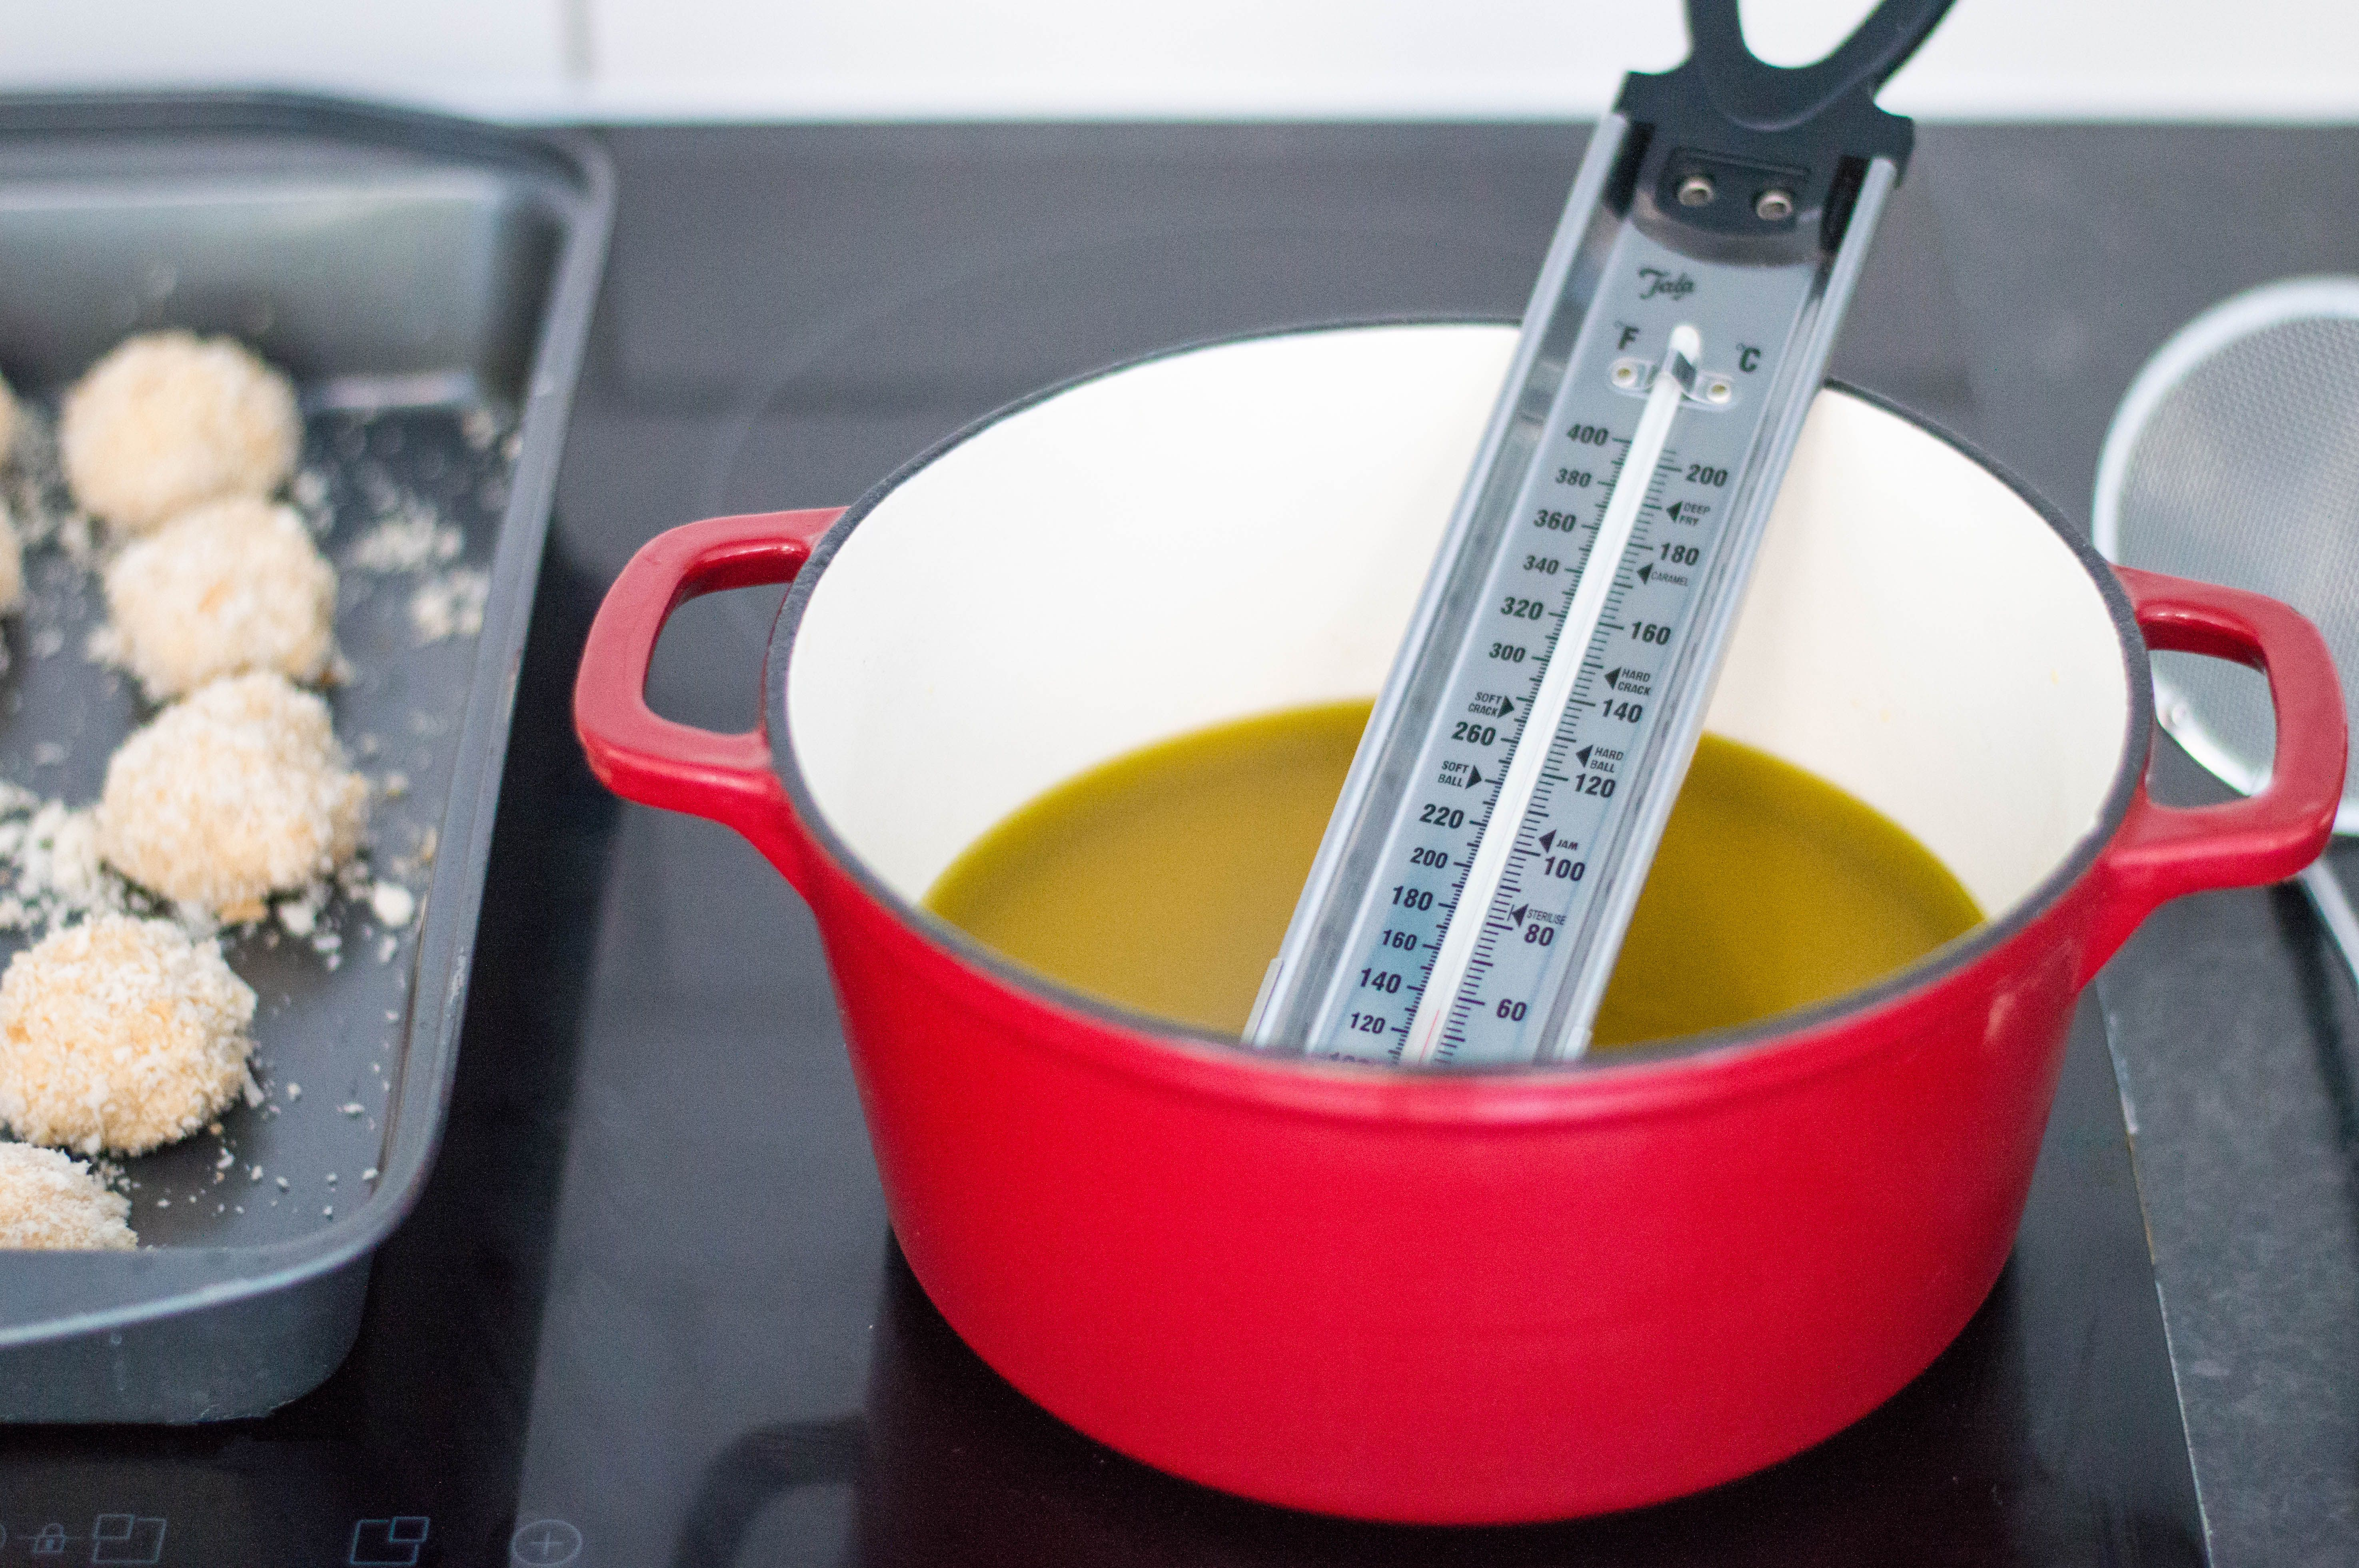 Taking the temperature of the frying oil